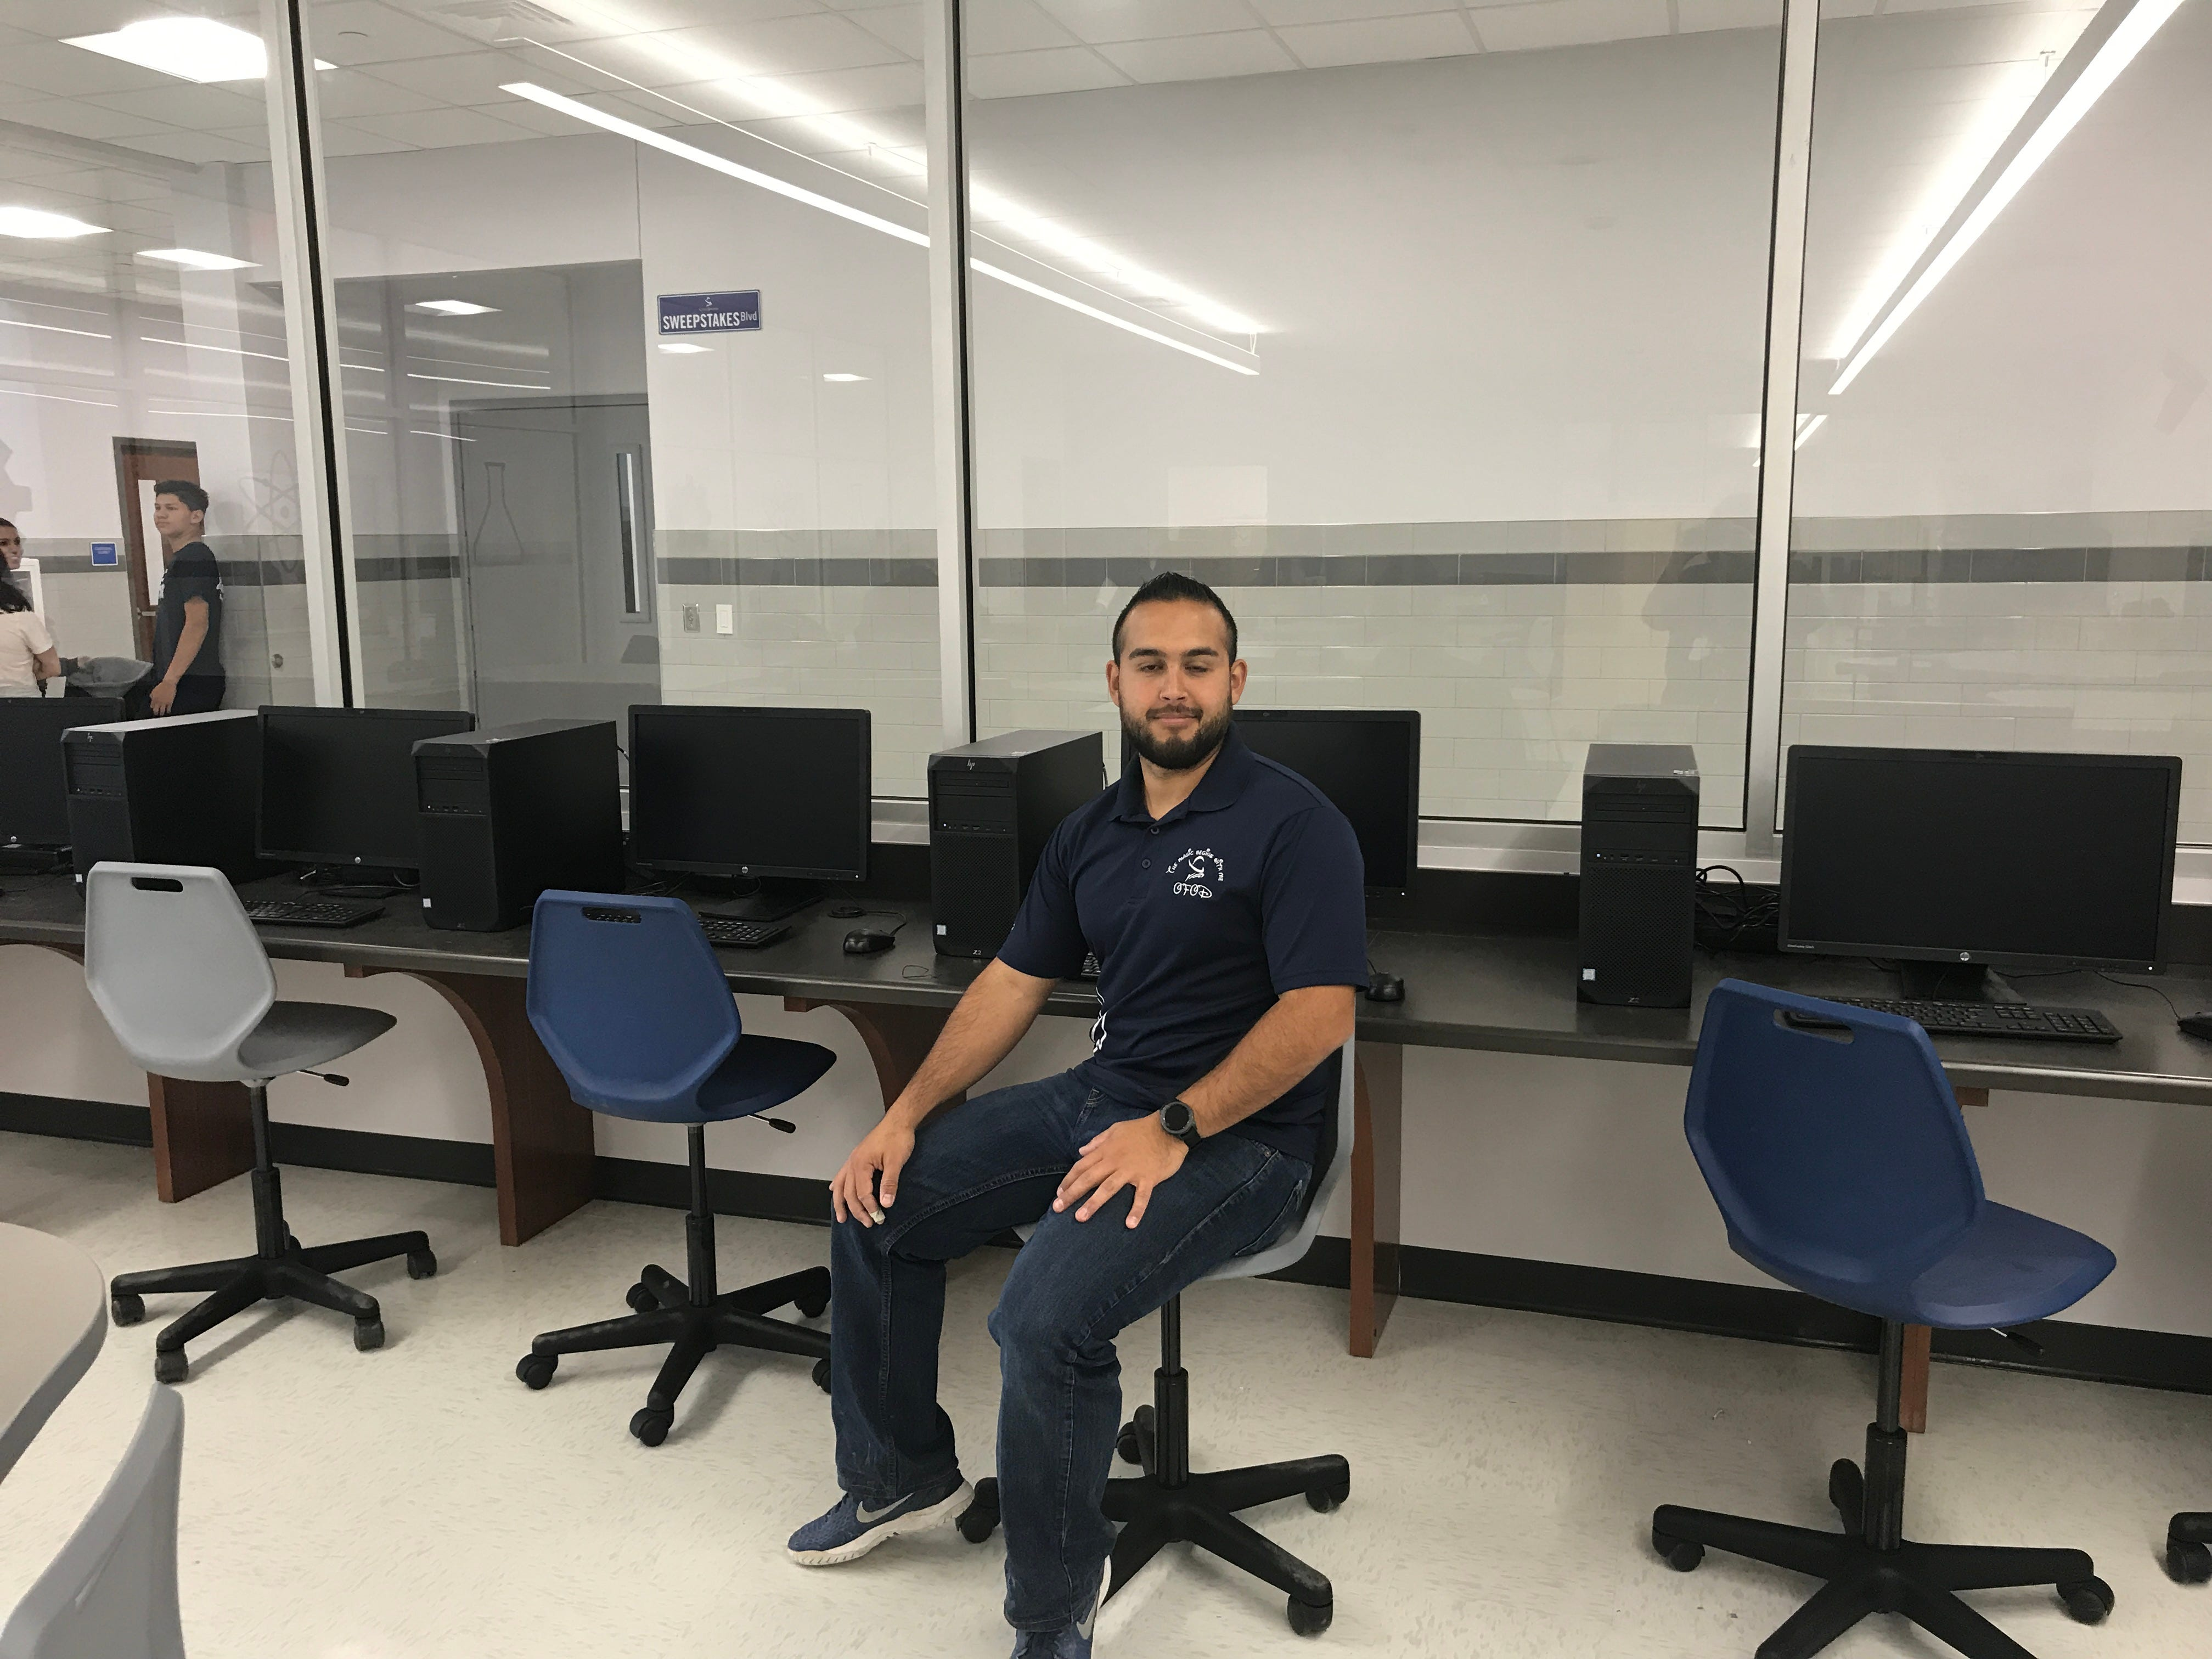 Alejandro Añoveros, a stem teacher, said the Stem classroom give students more freedom to to complete challenges related to their life.